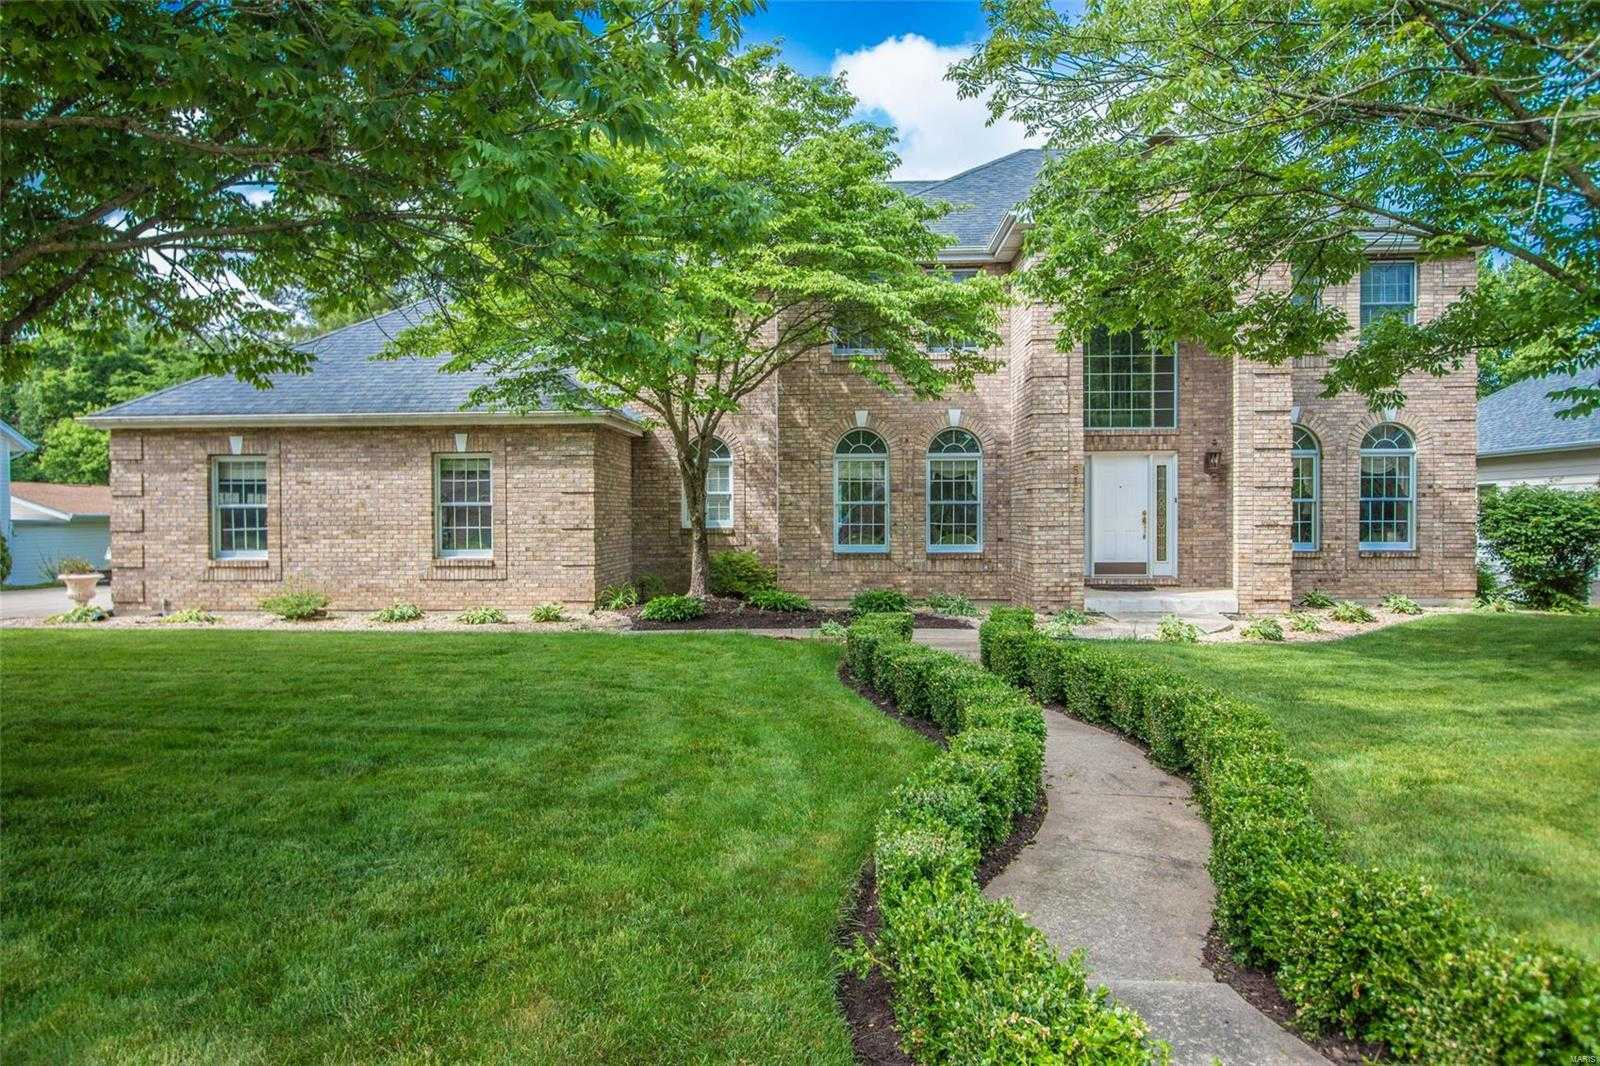 $530,000 - 4Br/5Ba -  for Sale in Woodmere At The Bluffs, St Charles